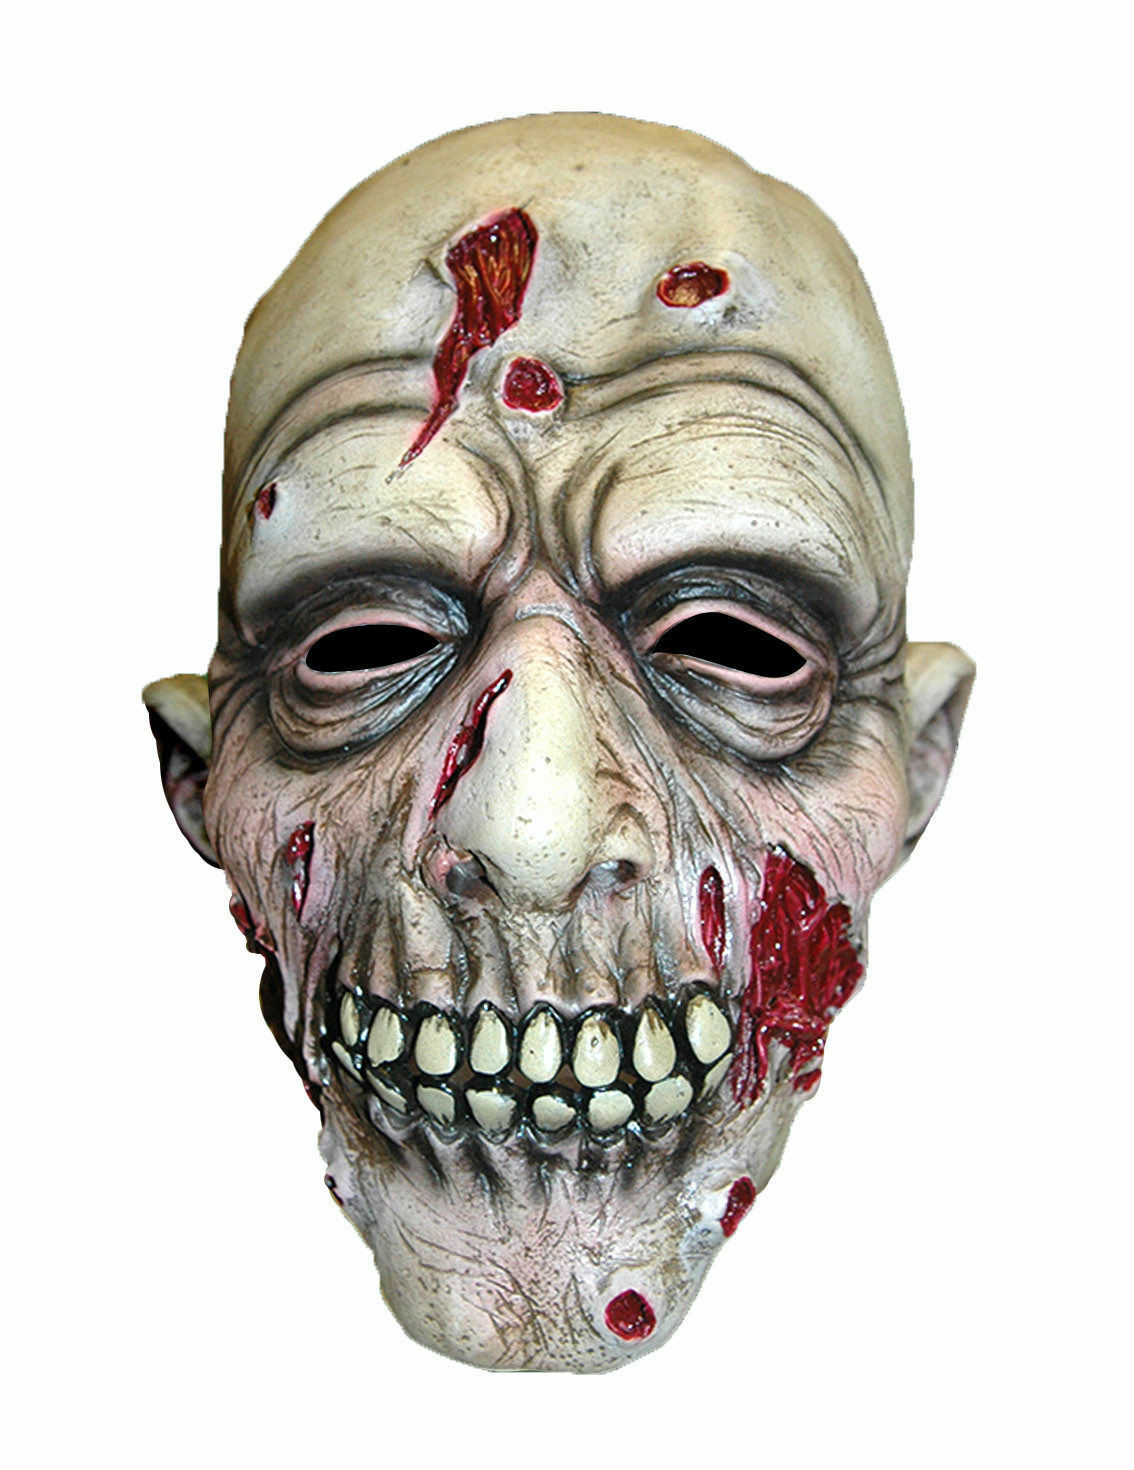 Top 10 Scariest Masks Ever | eBay